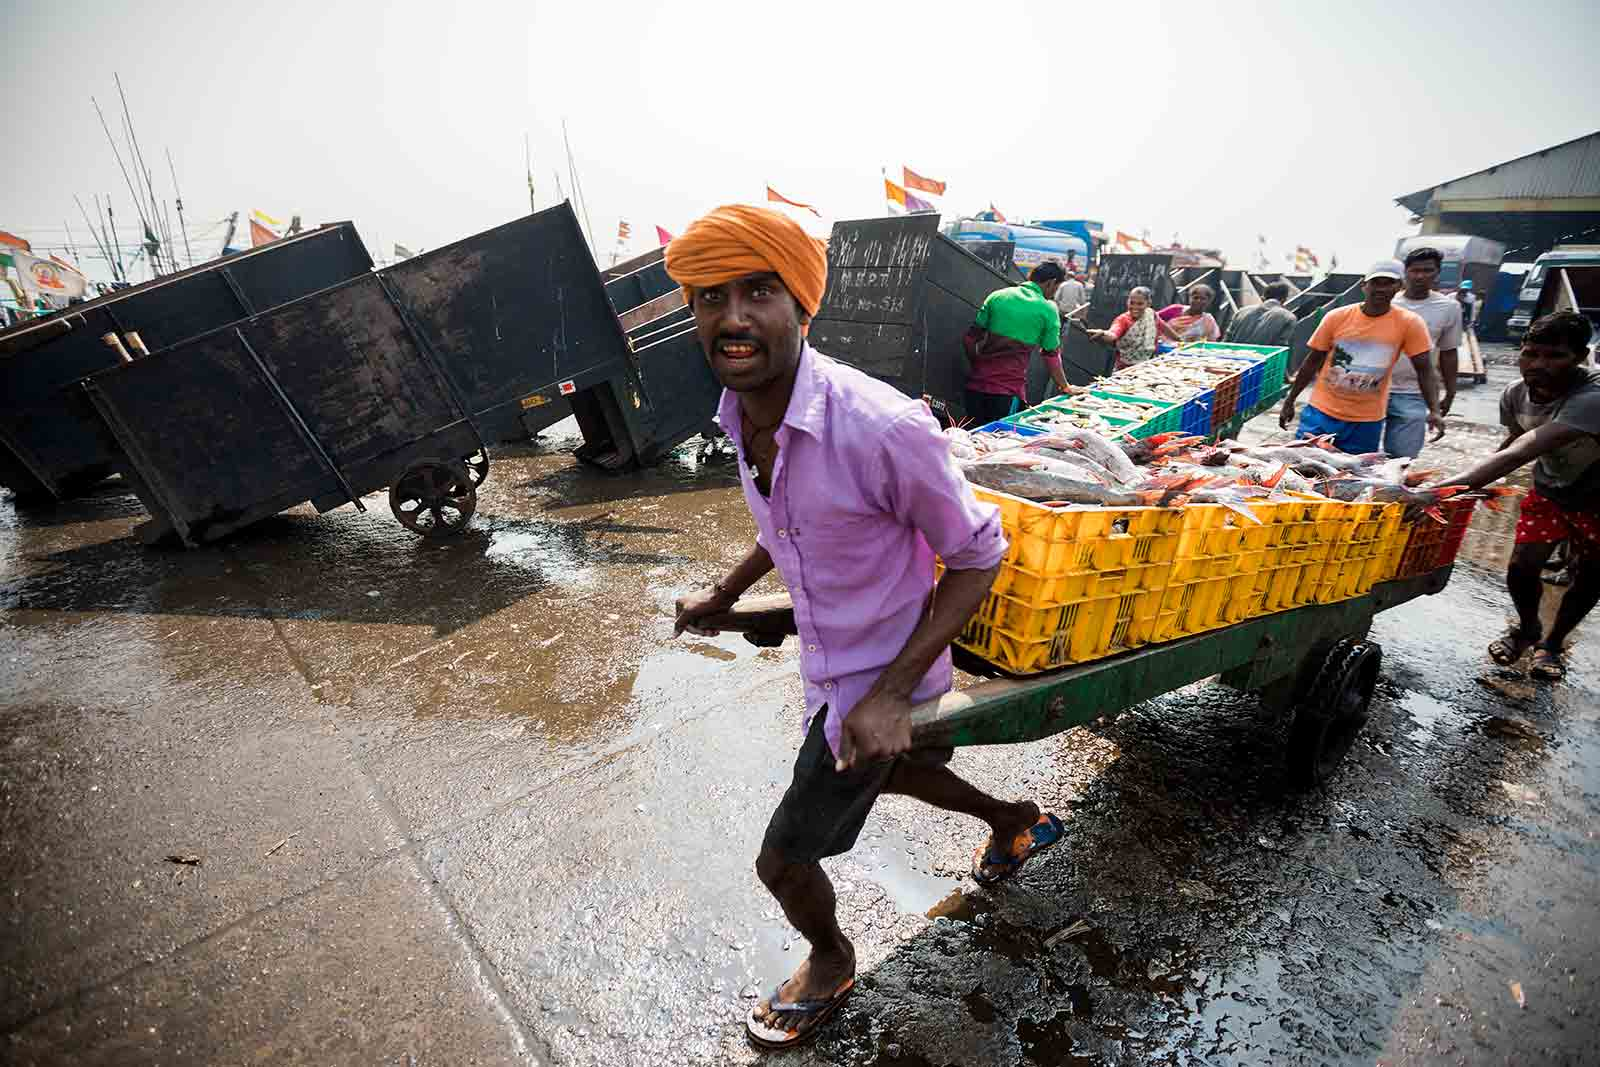 Men push loaded handcarts through the crowds at Sassoon Docks as they yell for people to get out of the way.